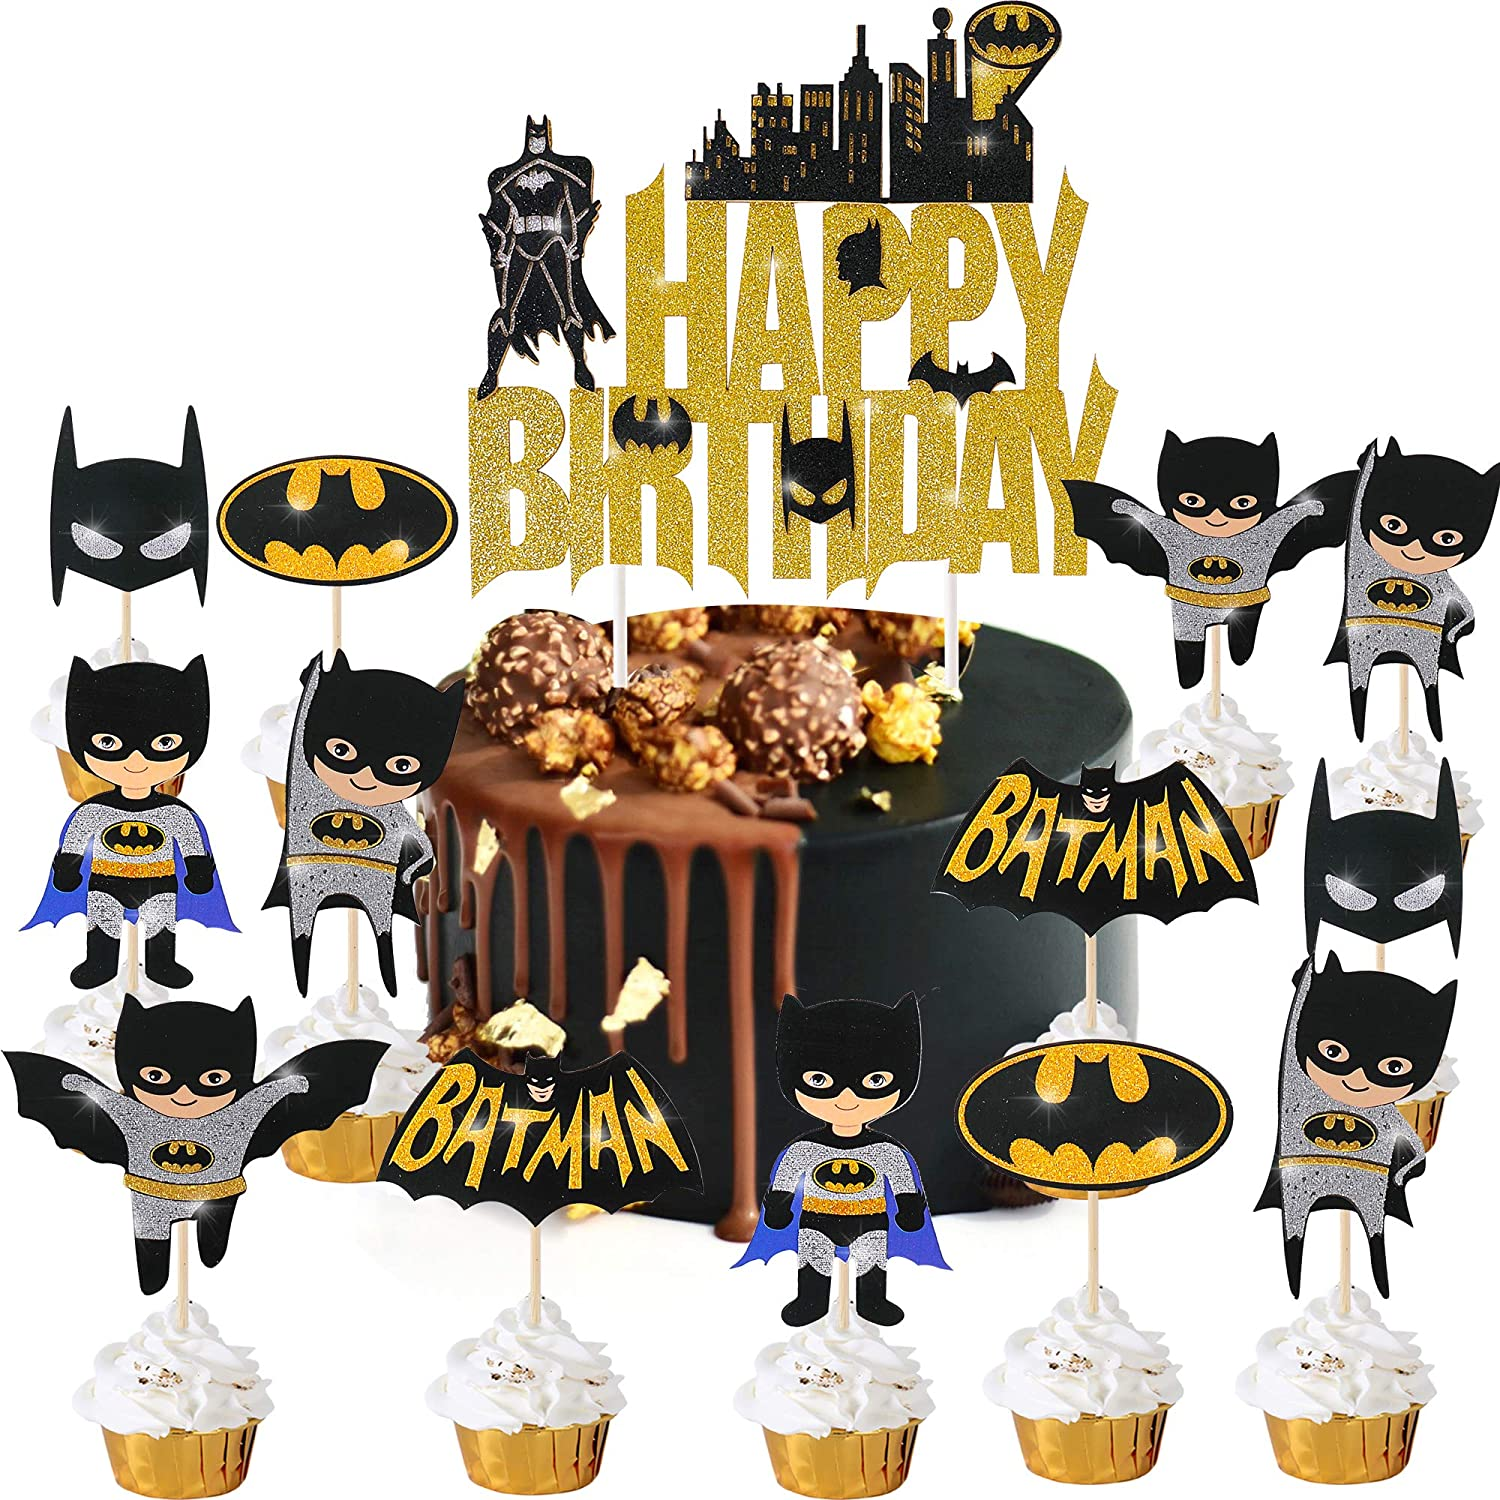 Batman Birthday Supplies Happy Birthday Cake Cupcake Toppers Decorations for Batman Theme Party for Kids Birthday Super Hero Theme Party Baby Shower Favor Food Picks Supplies Set of 25